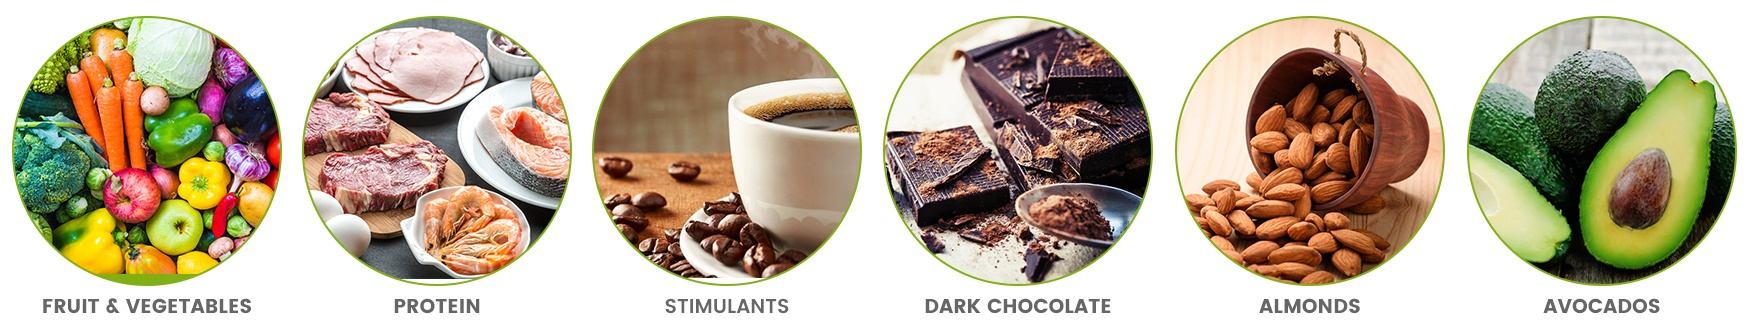 pictures of fruit,vegetables, protein, stimulants, dark chocolate, almonds and avacados.